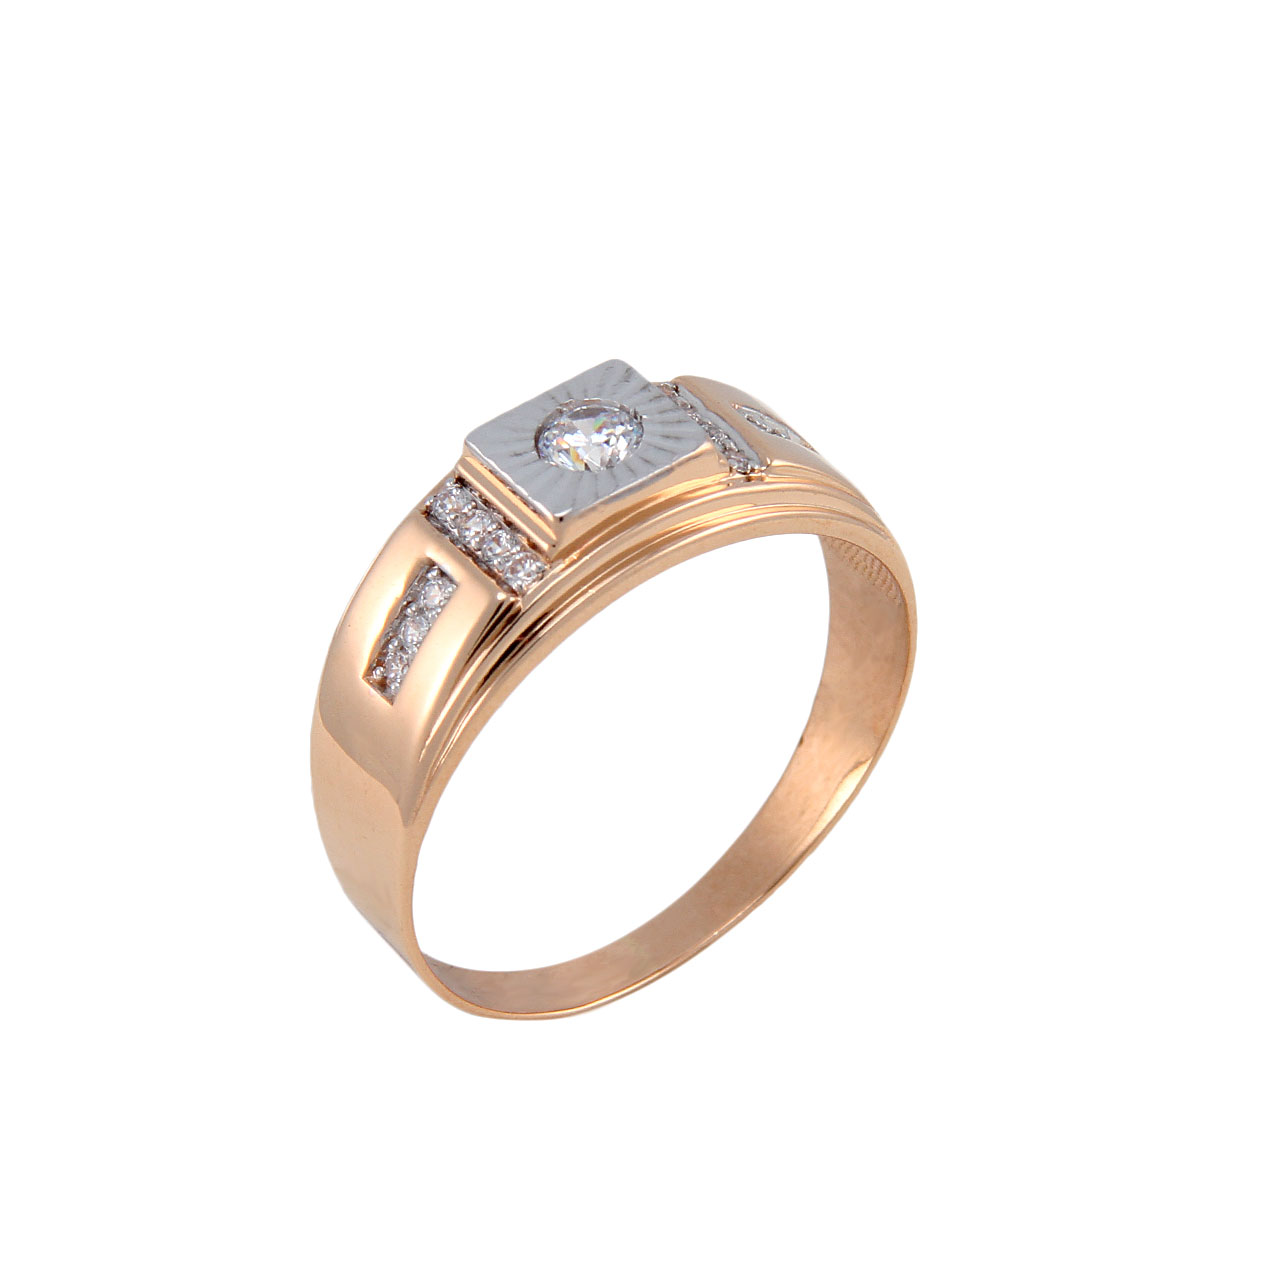 Man rose gold ring 1